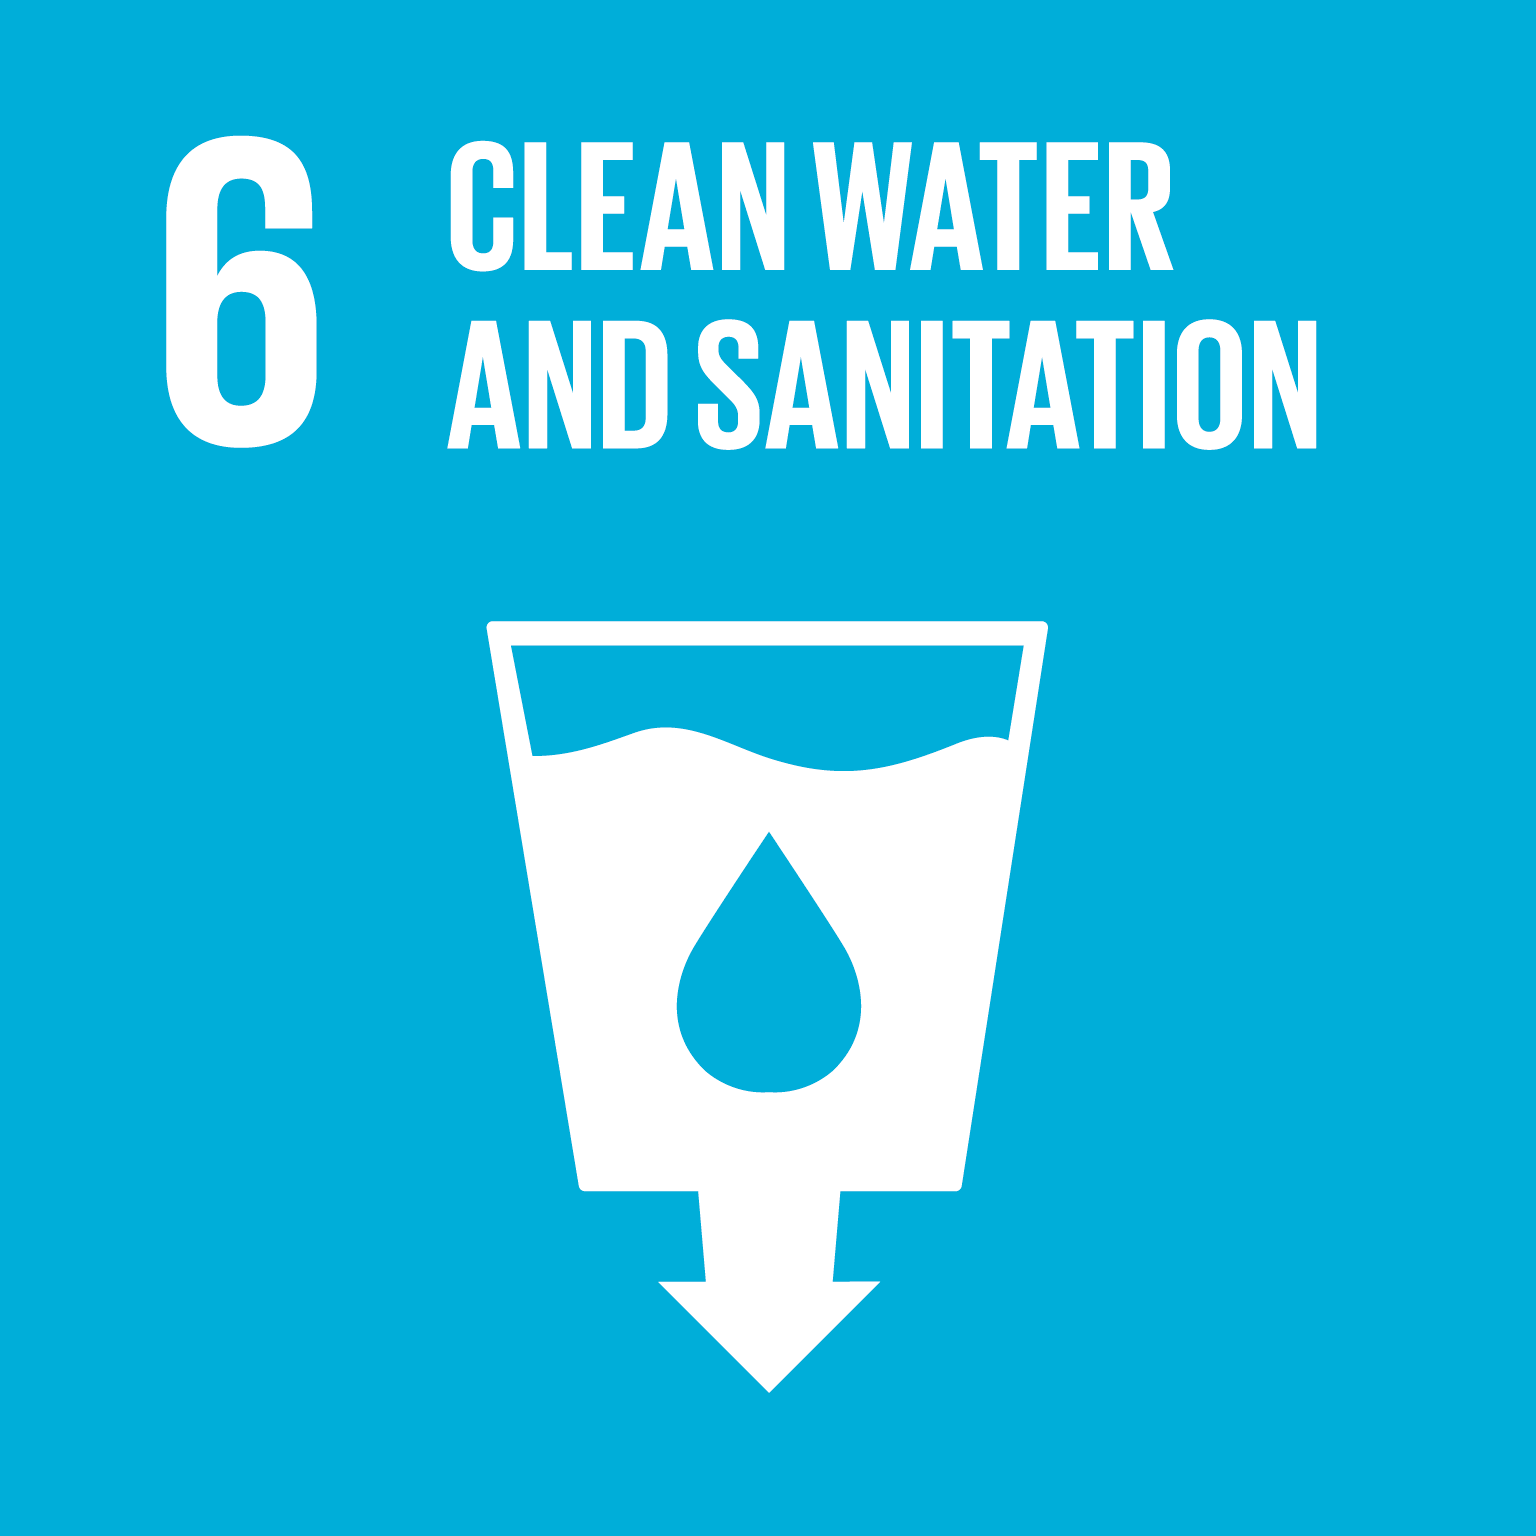 U.N. SDG goal 6, clean water and sanitation